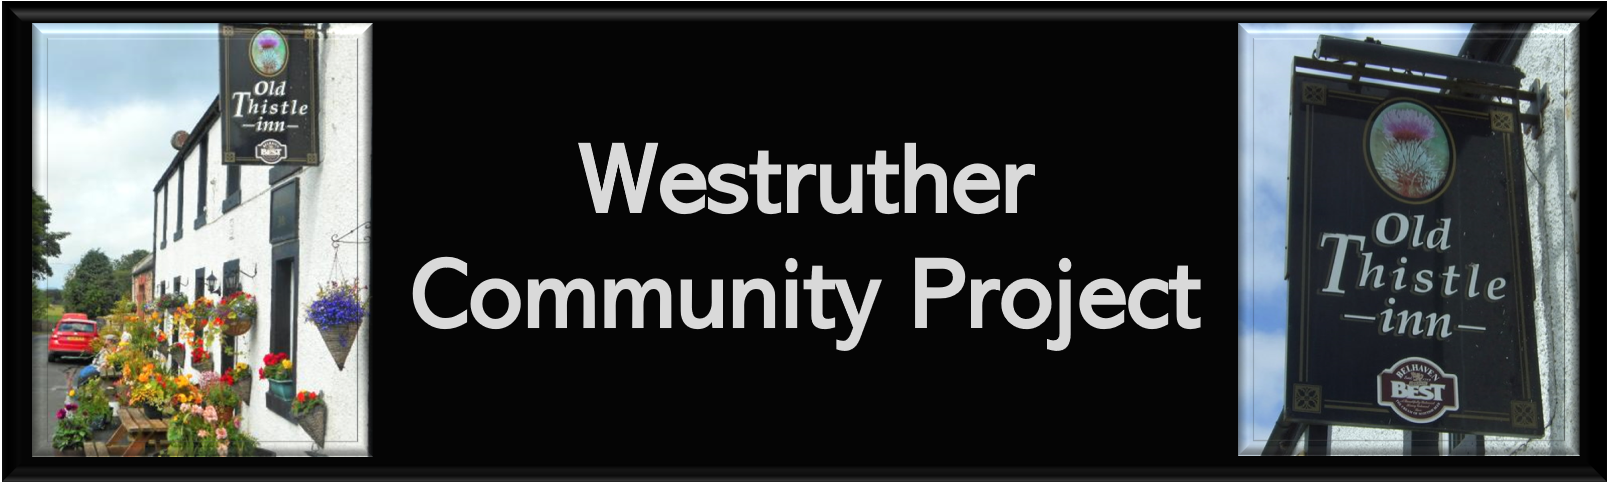 Westruther Community Project